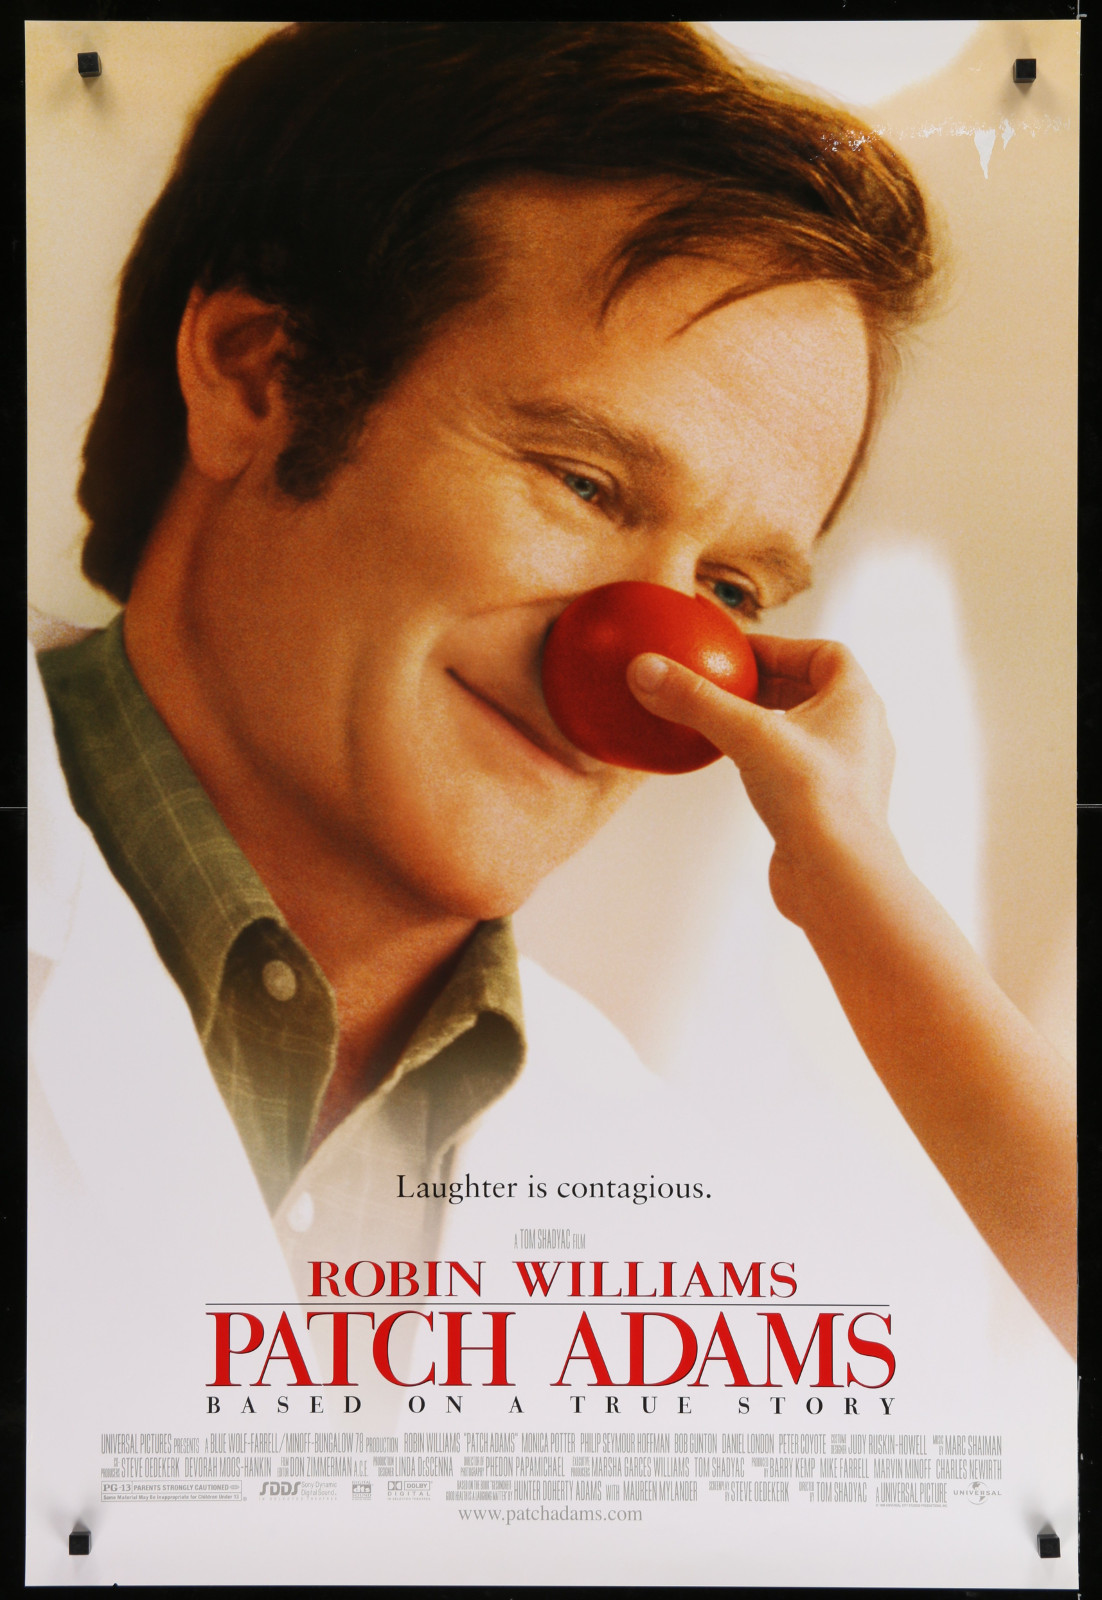 Patch Adams 2A393 A Part Of A Lot 23 Unfolded Mostly Double-Sided 27X40 One-Sheets '90S Great Movie Images!